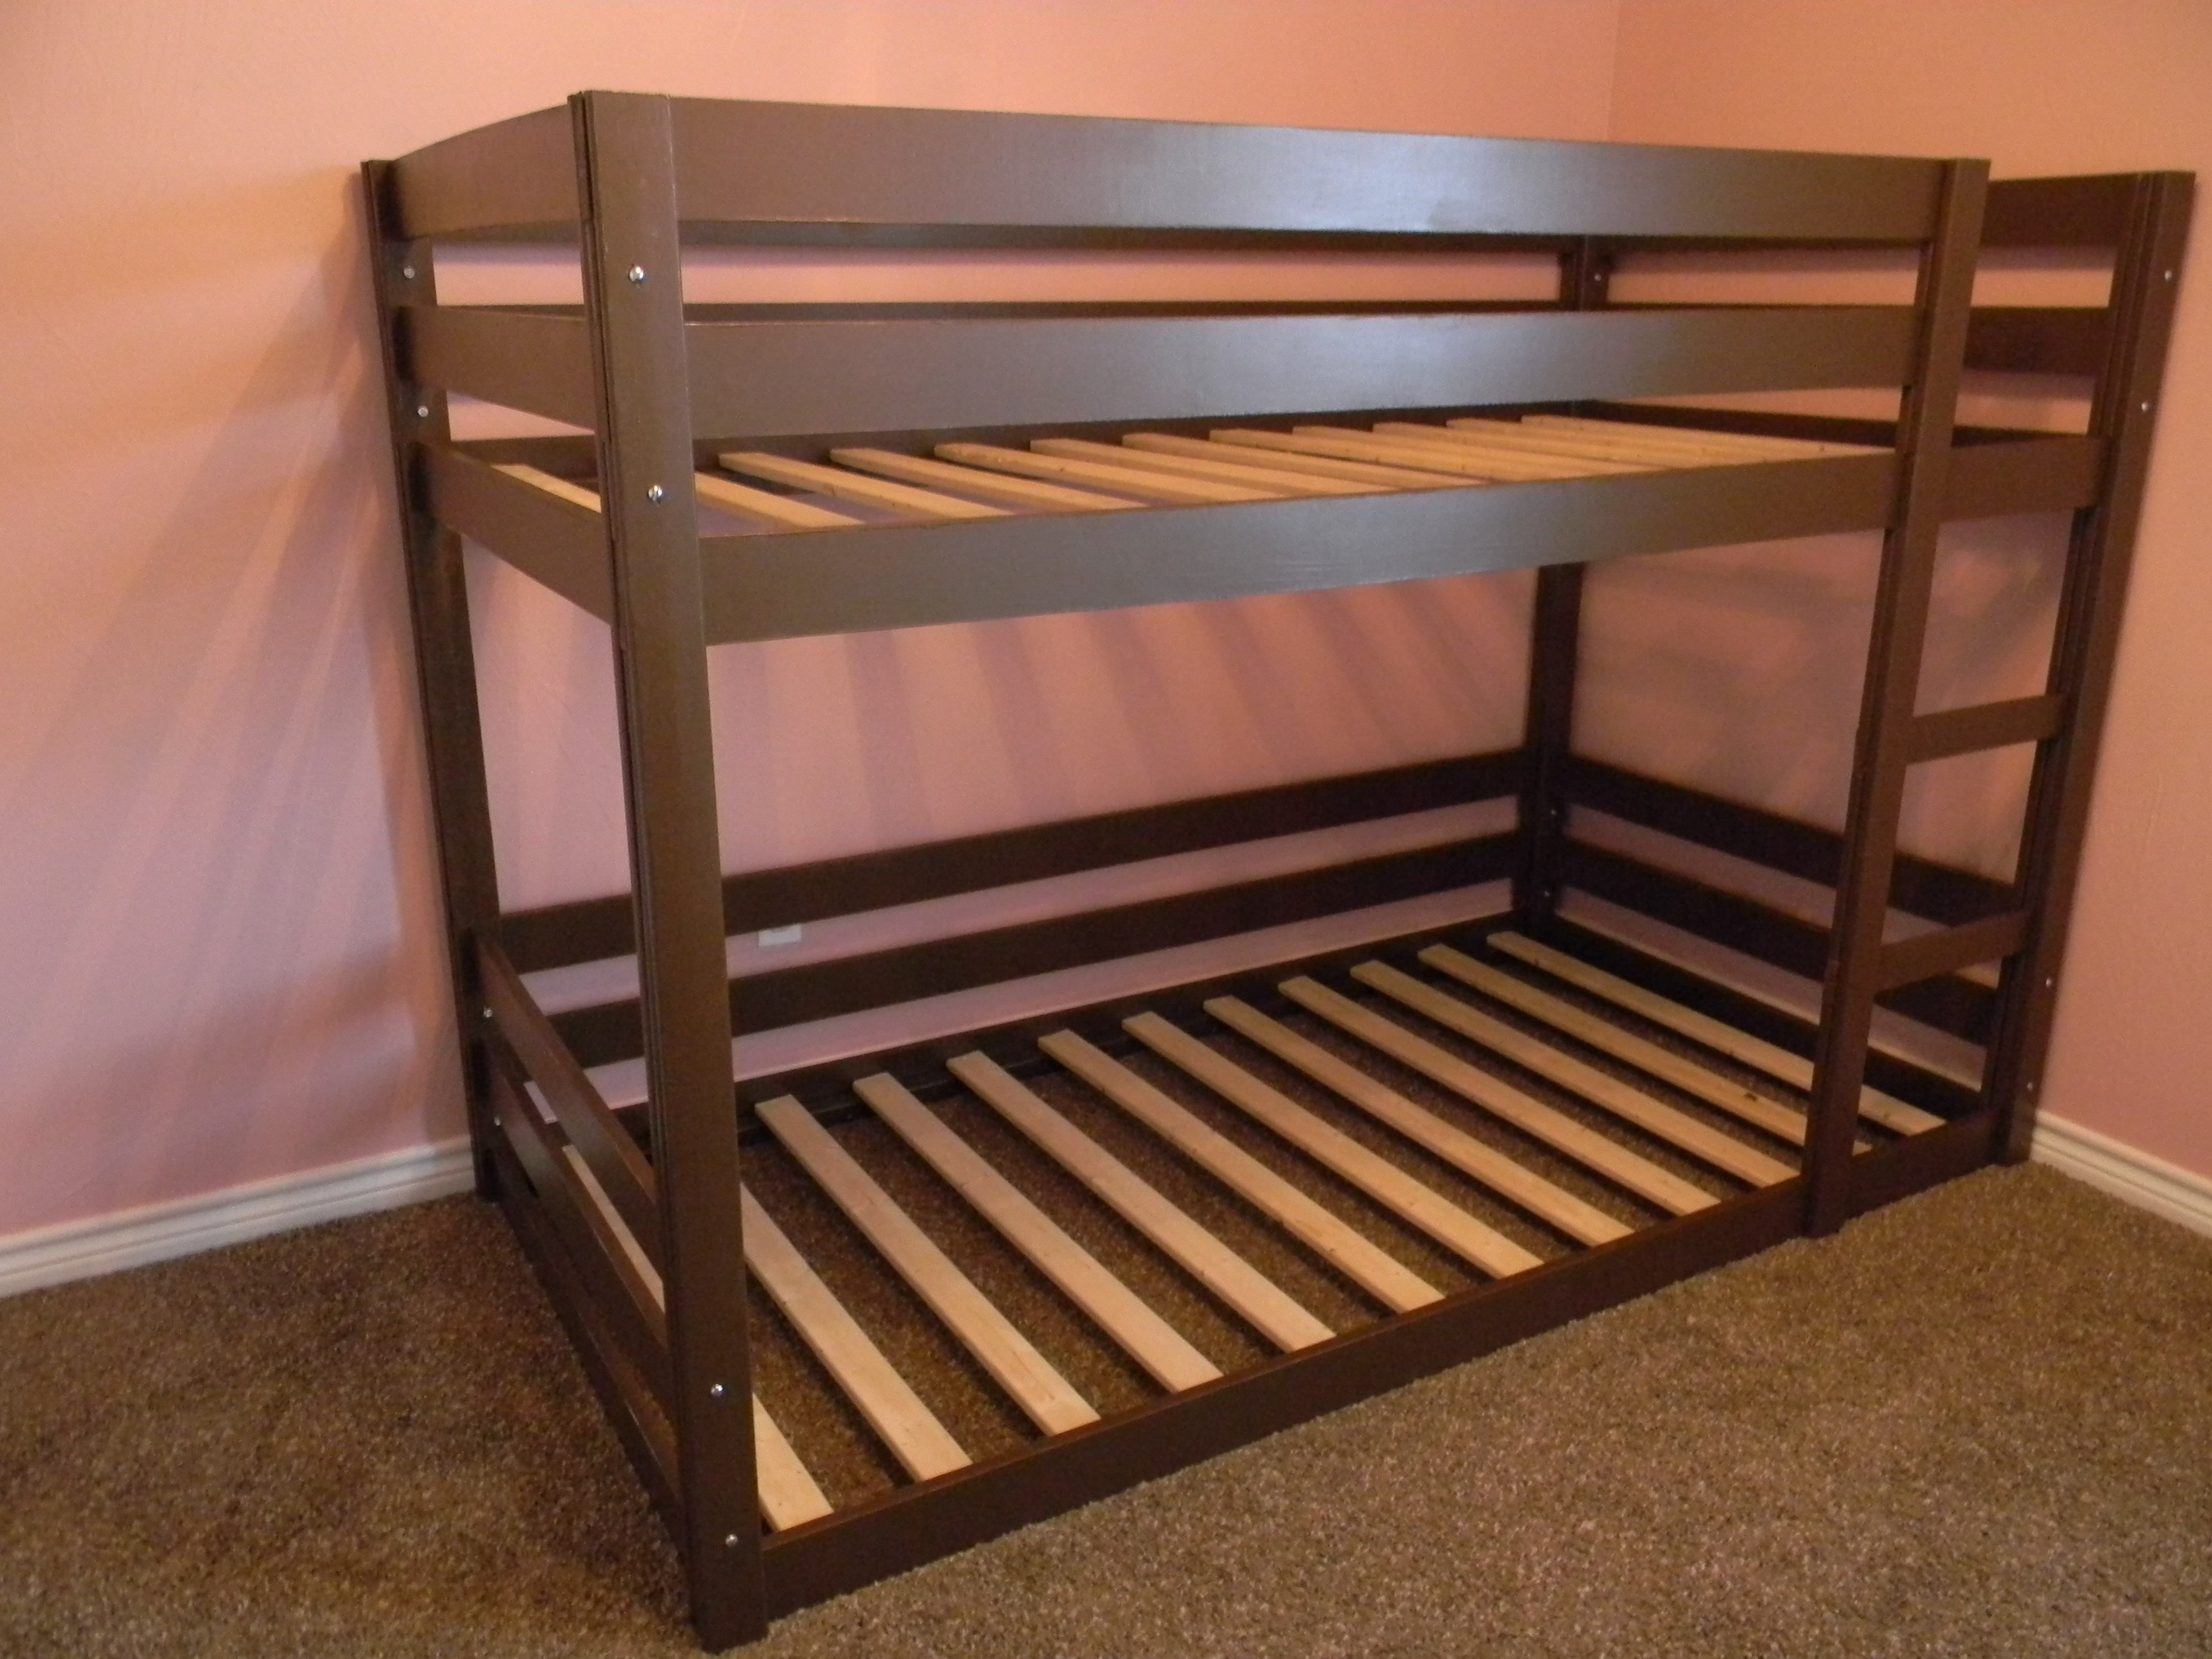 Building A Bunk Bed With Stairs Diy Bunk Beds For The Girls That The Hubby Will Feel